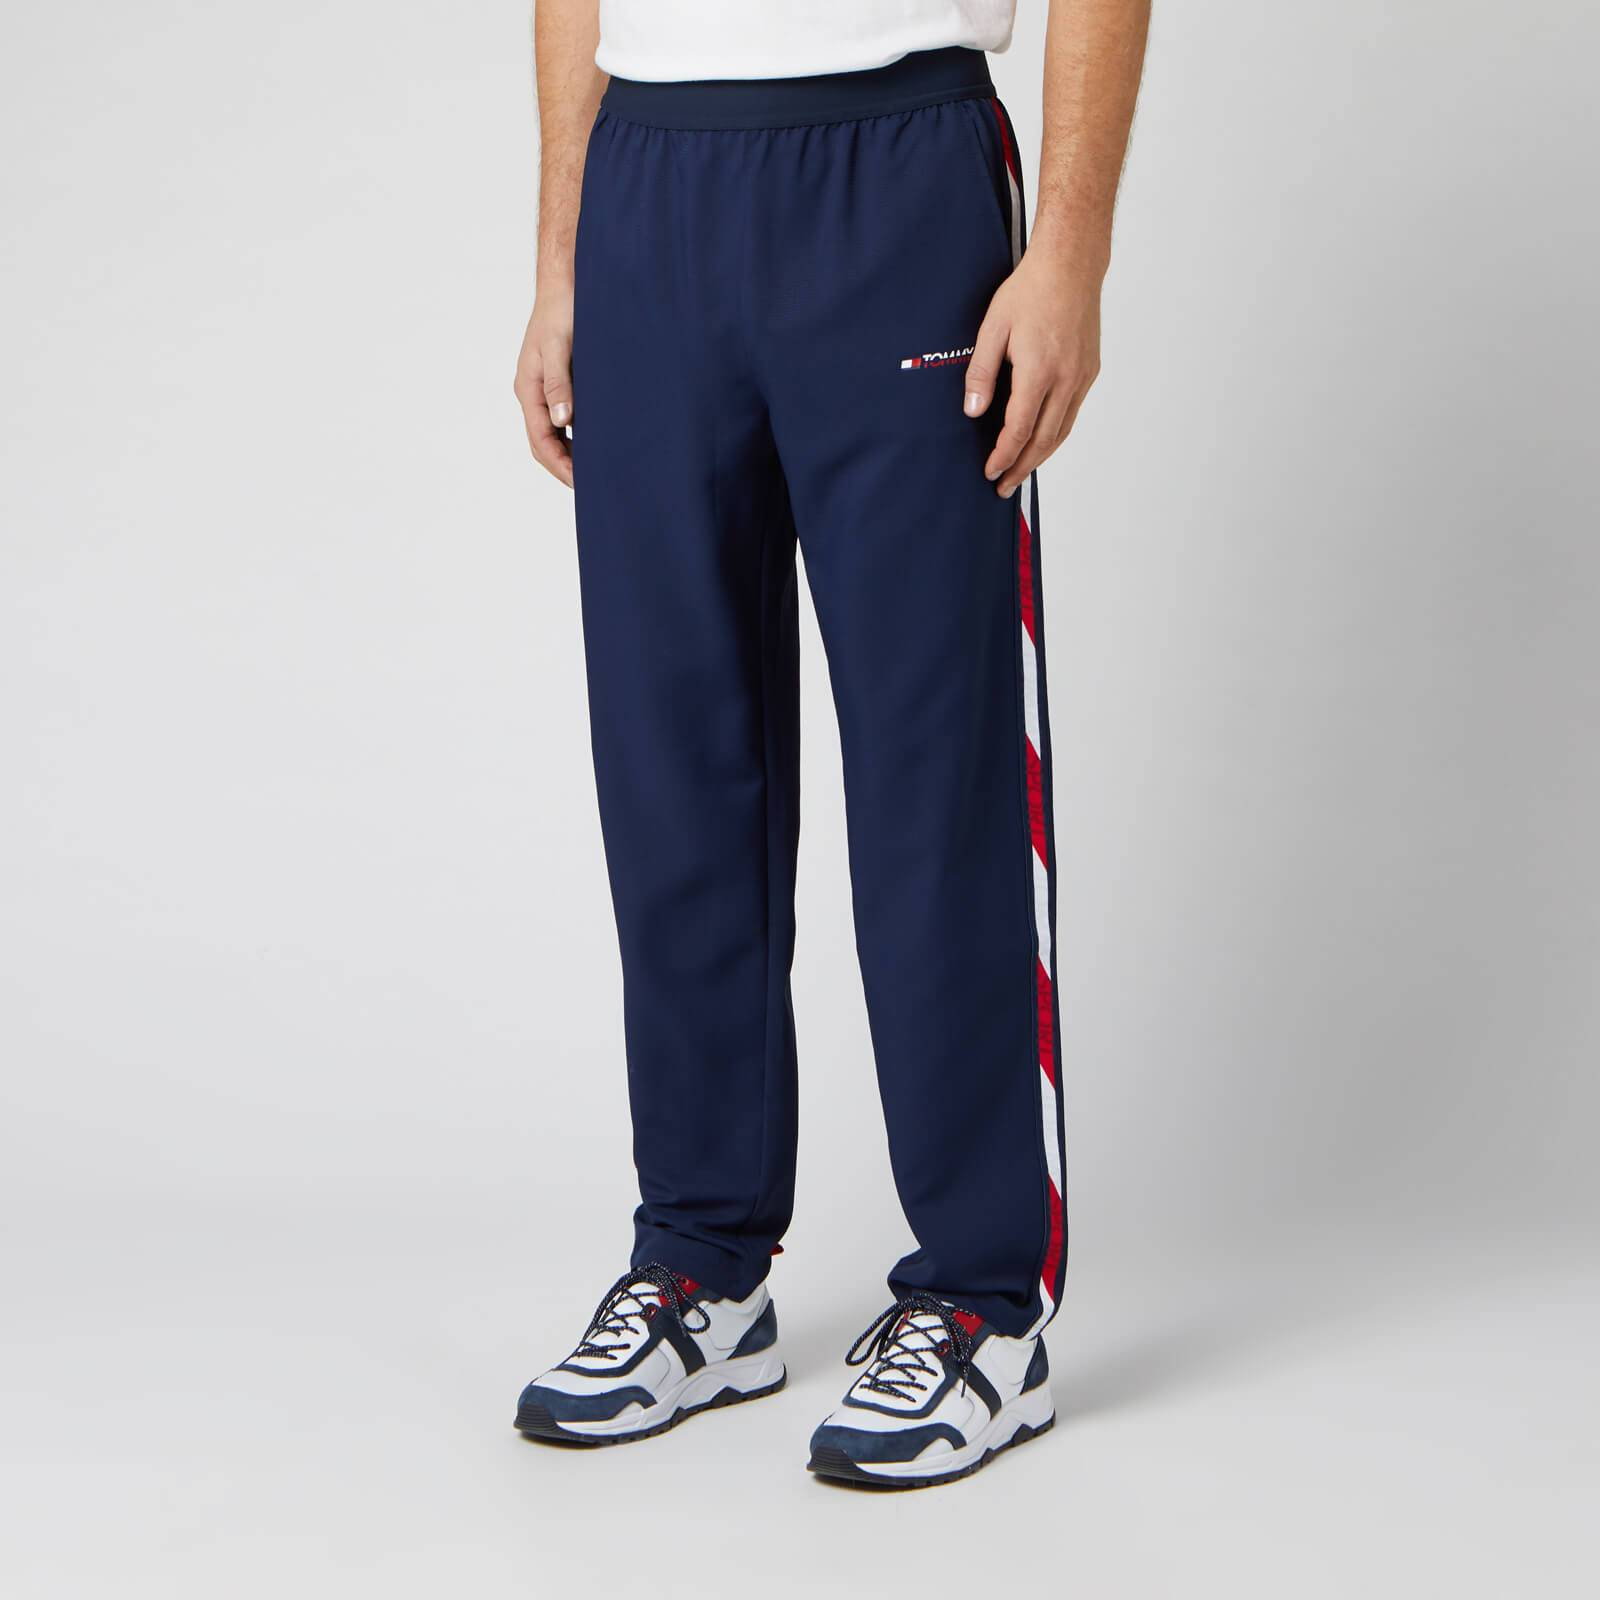 Tommy Sport Men's Woven Tape Pants - Sport Navy - M